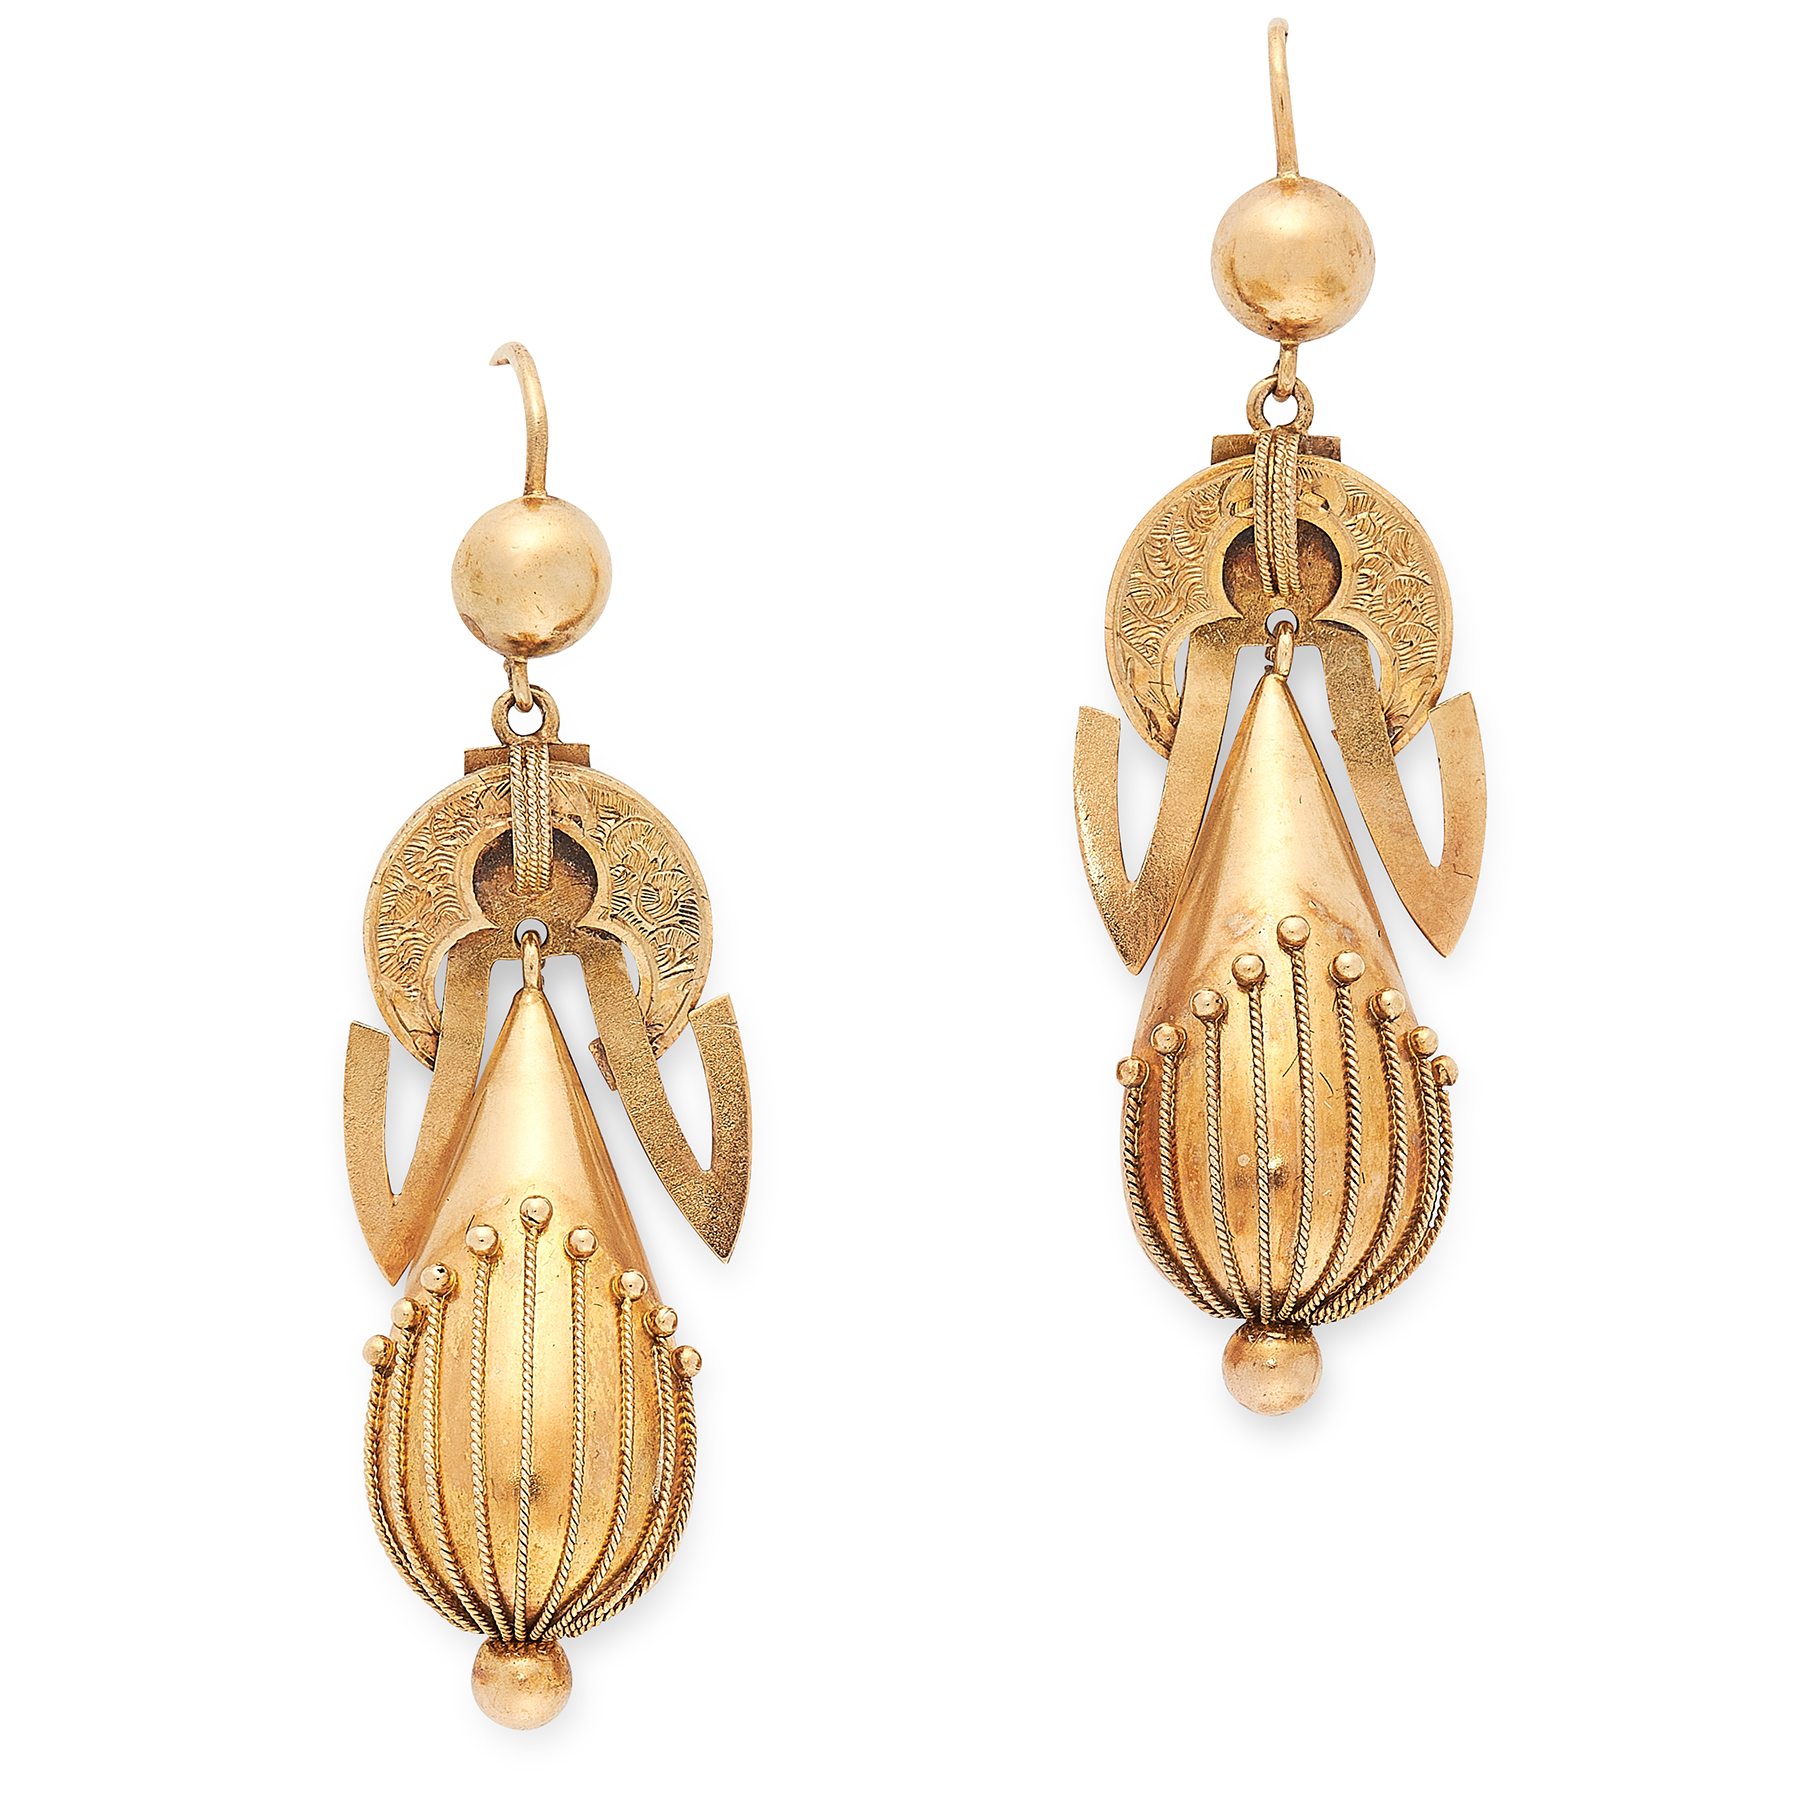 A PAIR OF ANTIQUE DROP EARRINGS, 19TH CENTURY in yellow gold, each formed of a tapering drop with